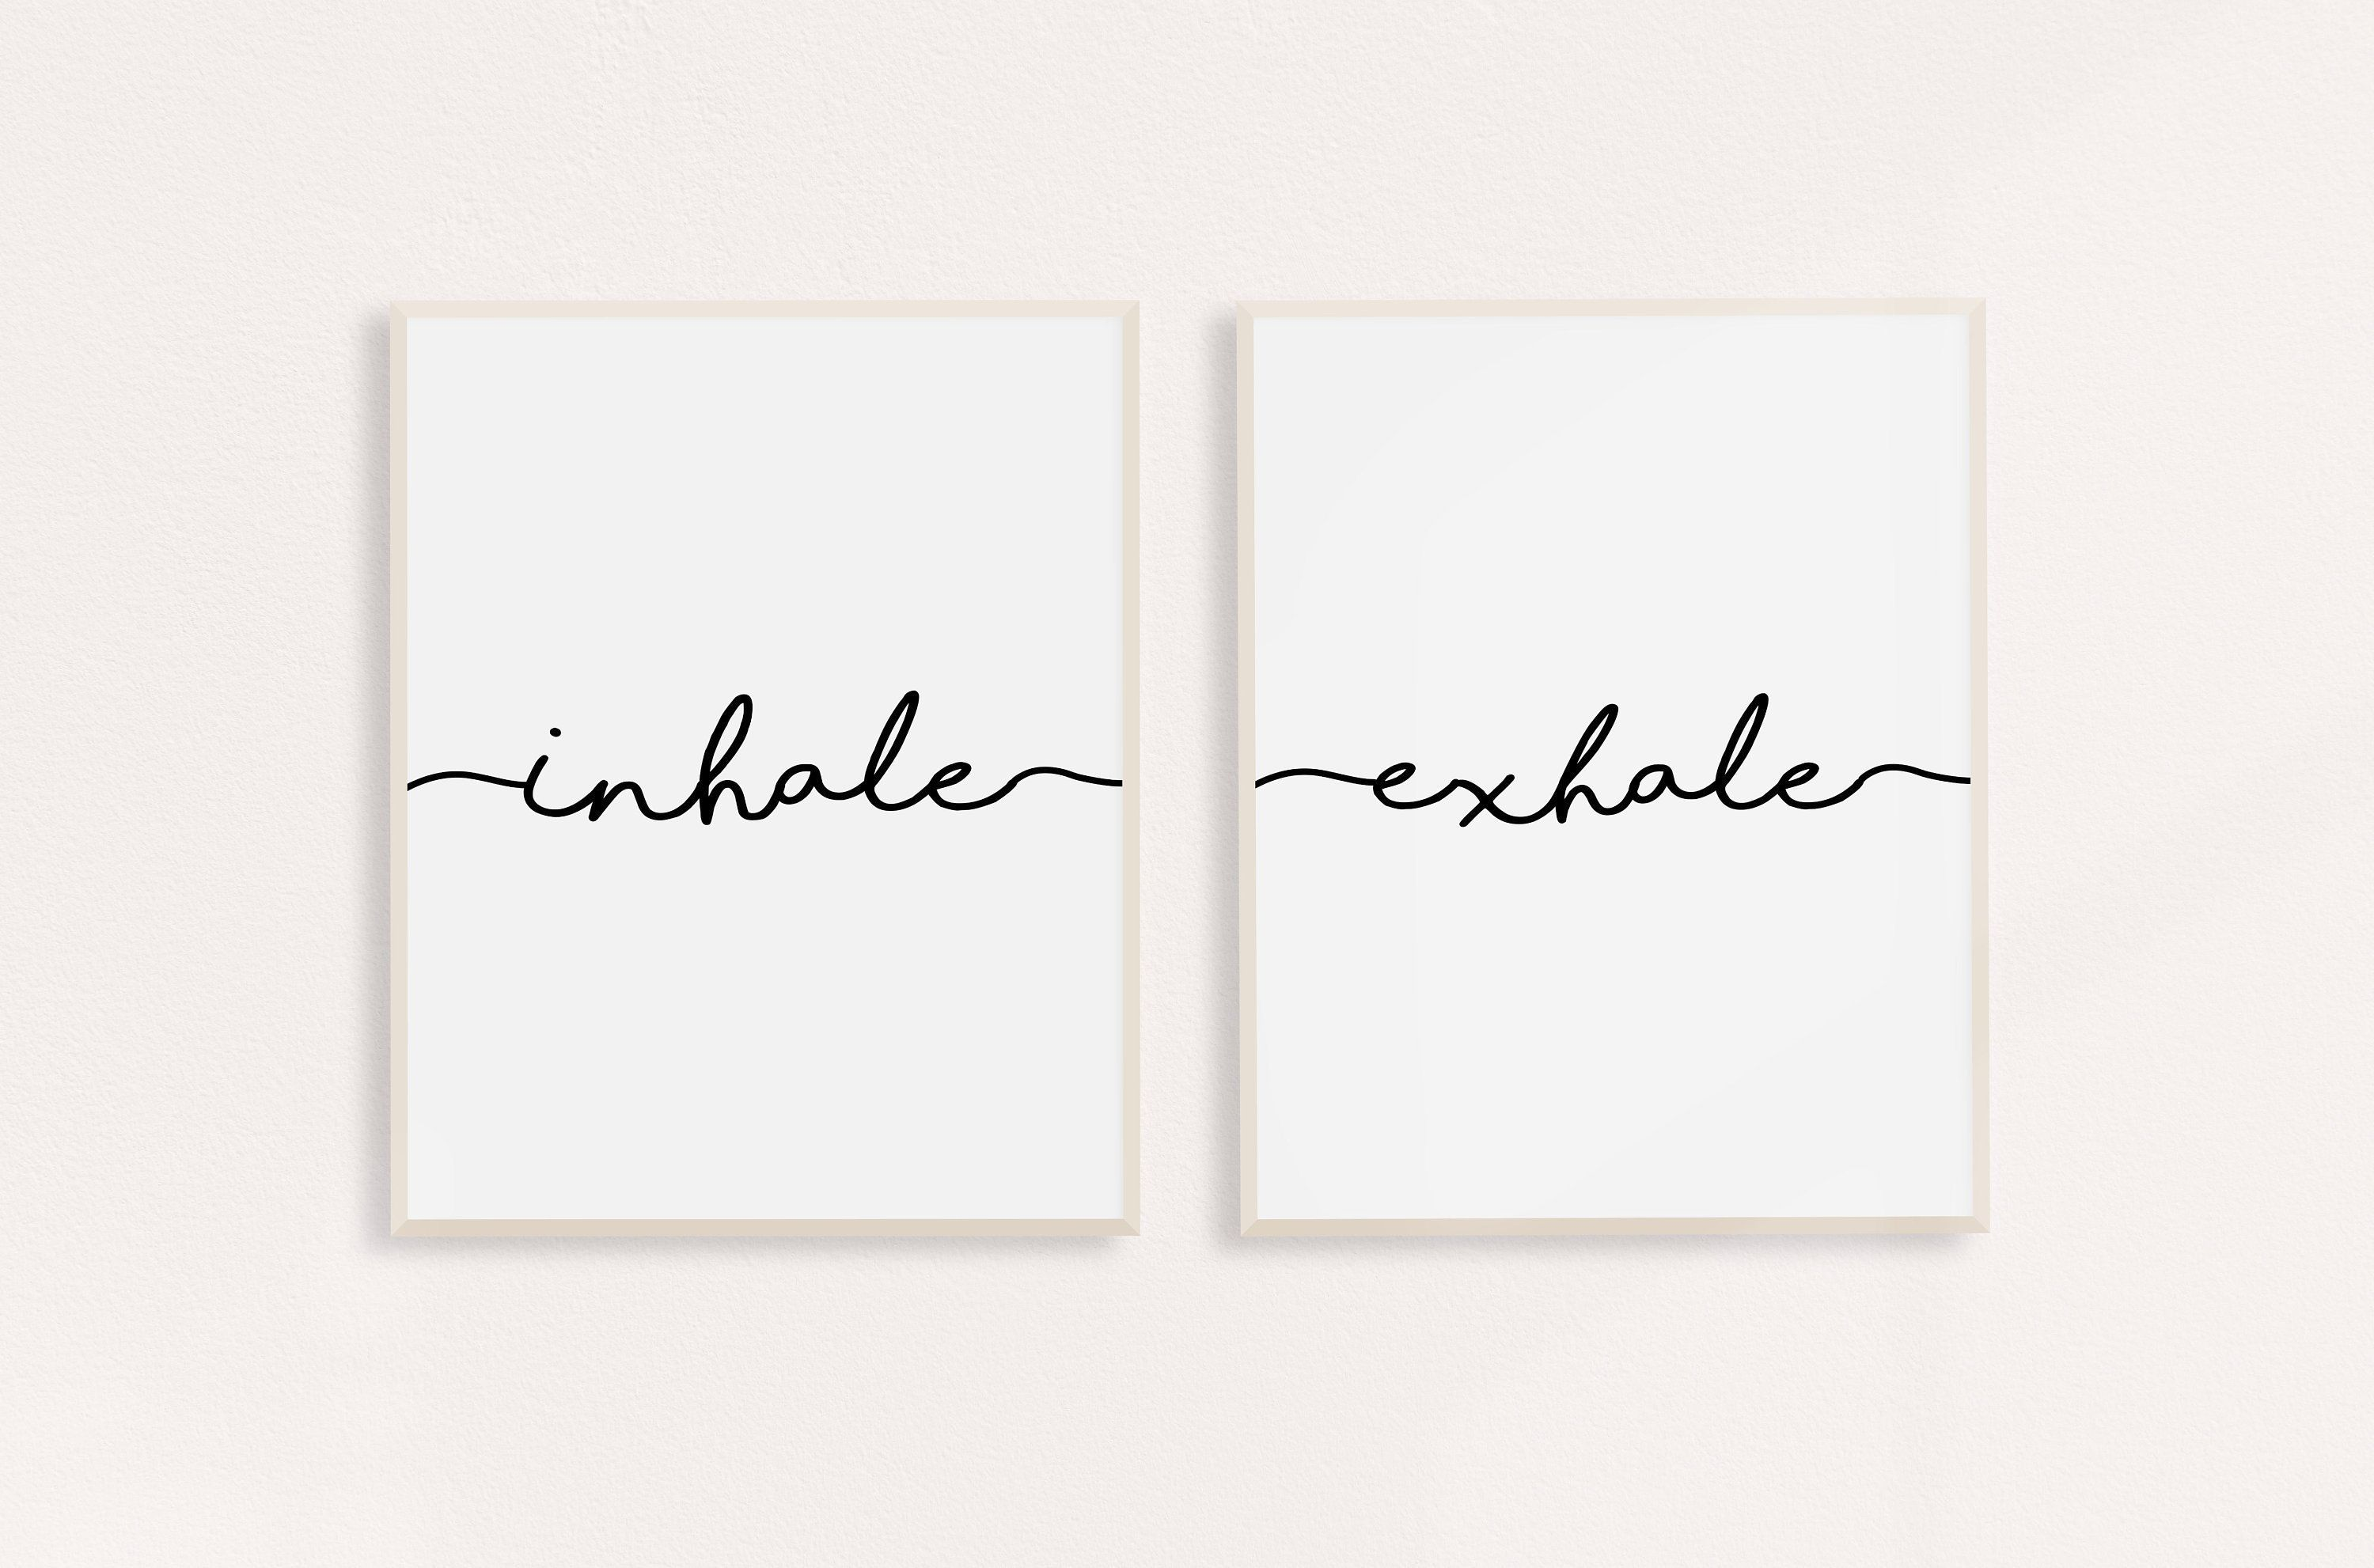 Inhale Exhale PRINTABLE Print | Inhale Exhale Wall Art | Yoga Poster | Inhale Exhale Poster | Mindfulness Gift | Yoga Art | #inhaleexhale Inhale Exhale PRINTABLE Print | Inhale Exhale Wall Art | Yoga Poster | Inhale Exhale Poster | Mindfulness Gift | Yoga Art | #inhaleexhale